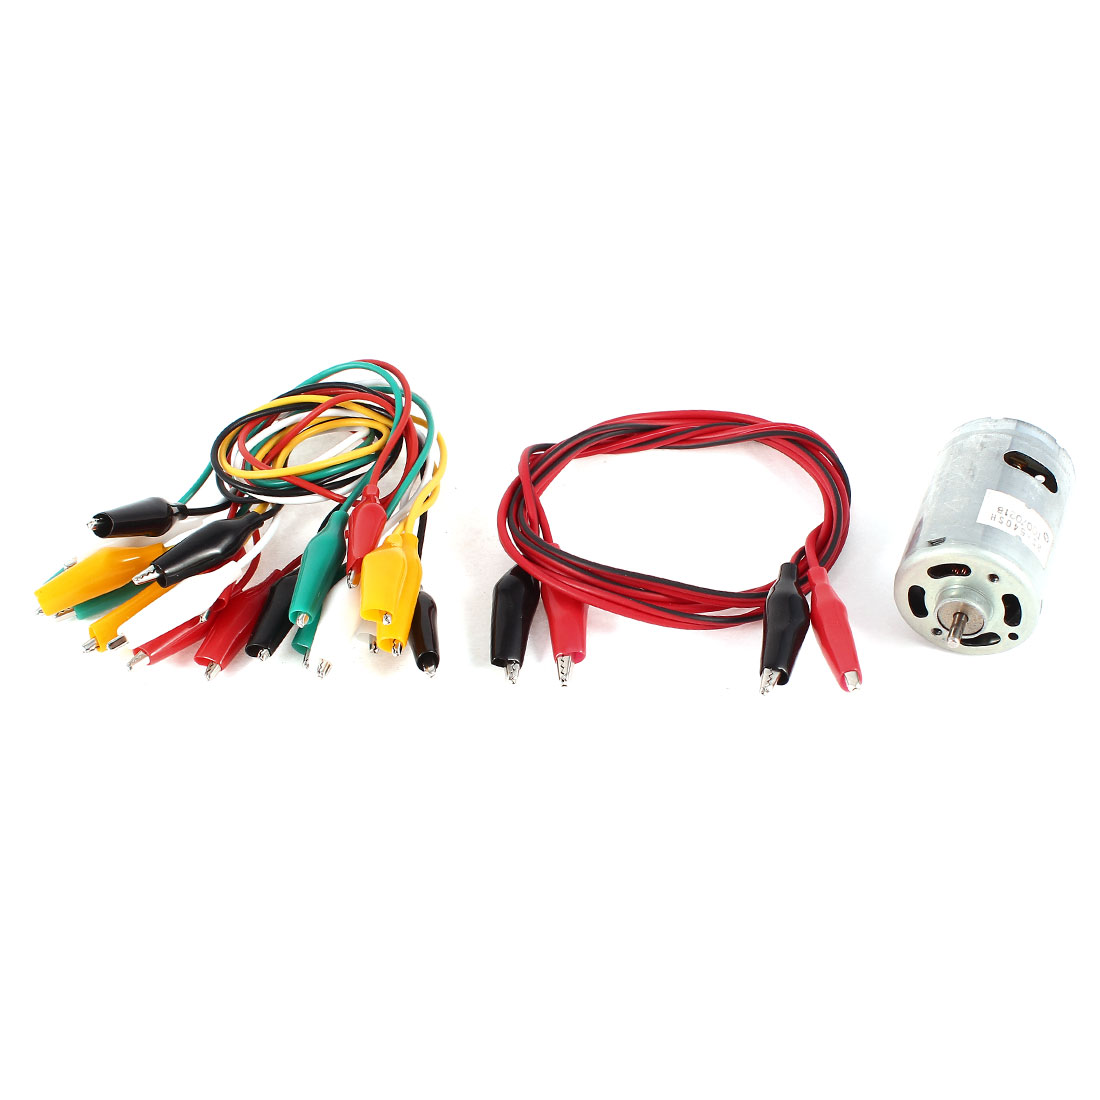 11 Pcs Single/Dual Double-ended Wire Test Leads Alligator Clips Jumper Set + RS-540SH Motor DC 6-12V